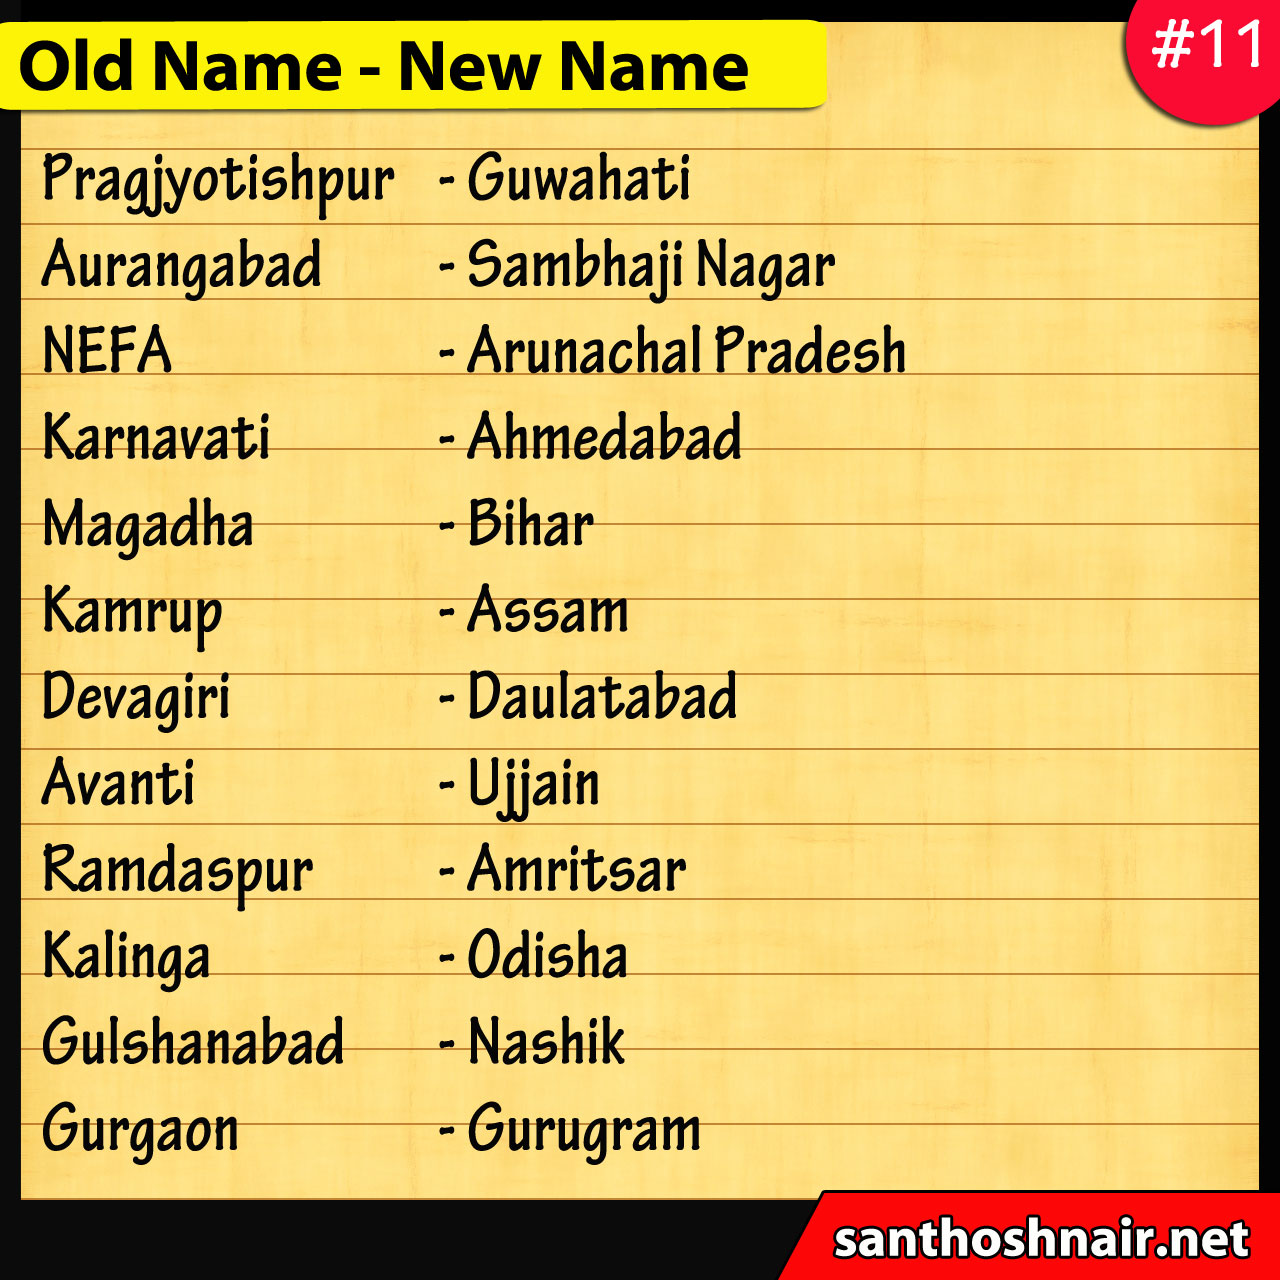 #11 - Old Names and New Names